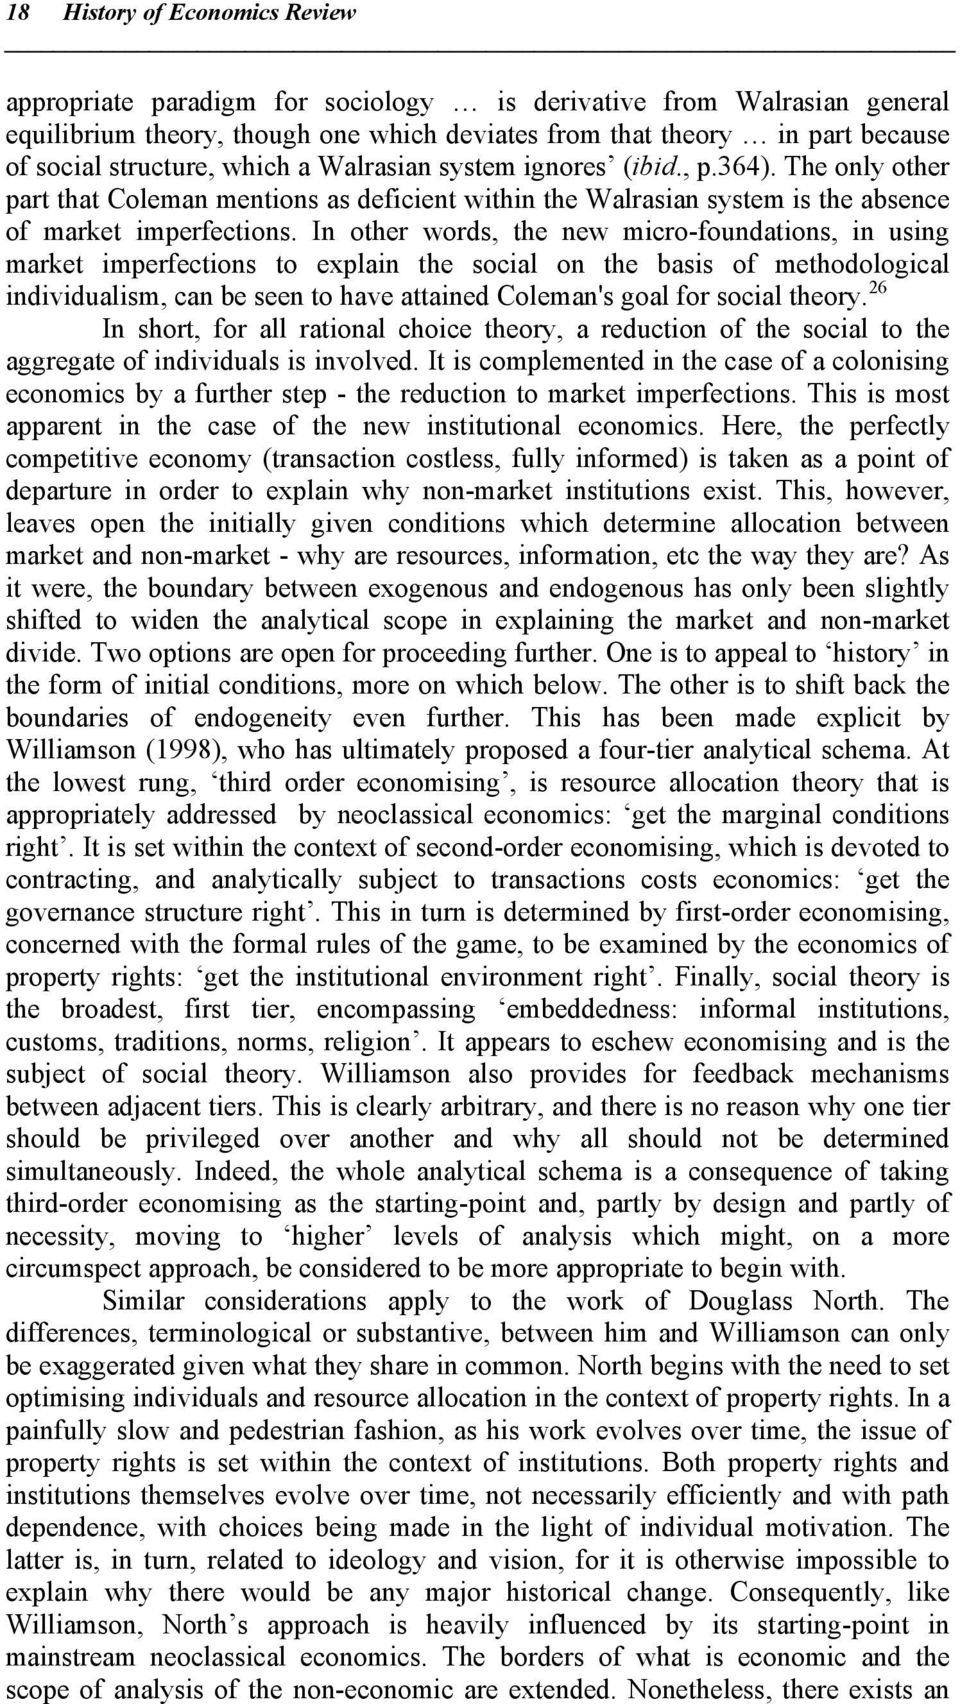 In other words, the new micro-foundations, in using market imperfections to explain the social on the basis of methodological individualism, can be seen to have attained Coleman's goal for social